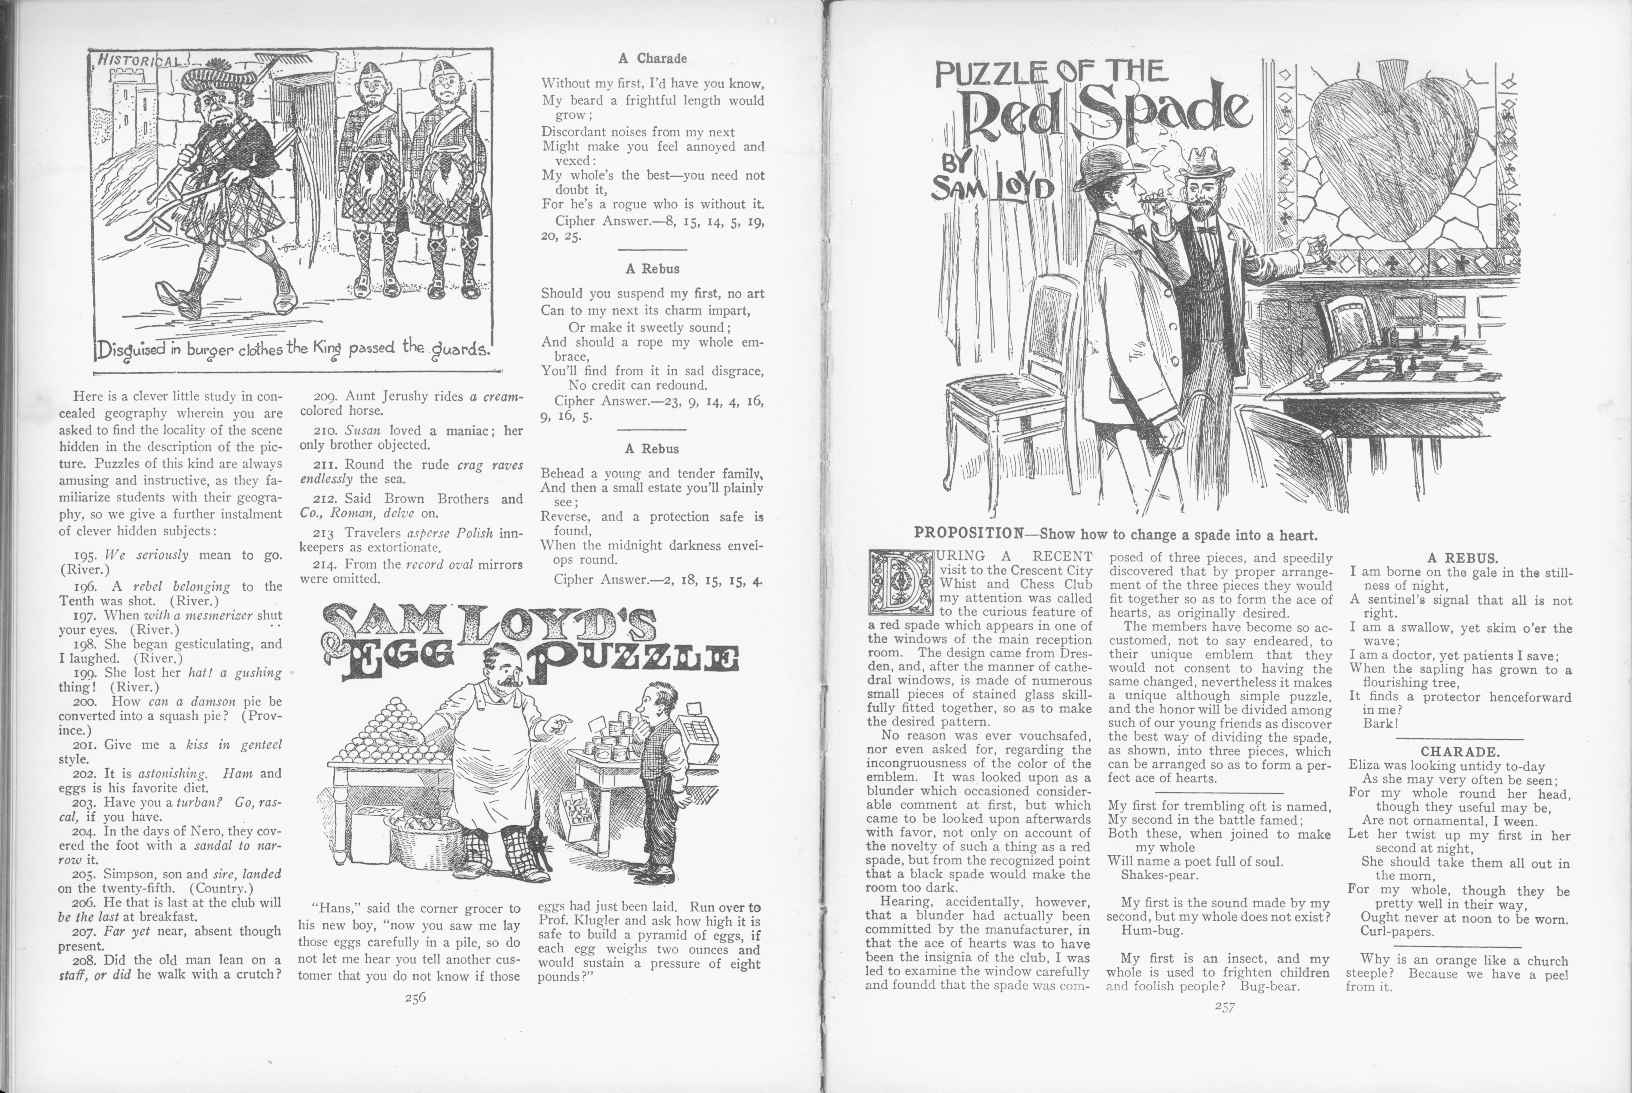 Sam Loyd - Cyclopedia of Puzzles - page 256-257